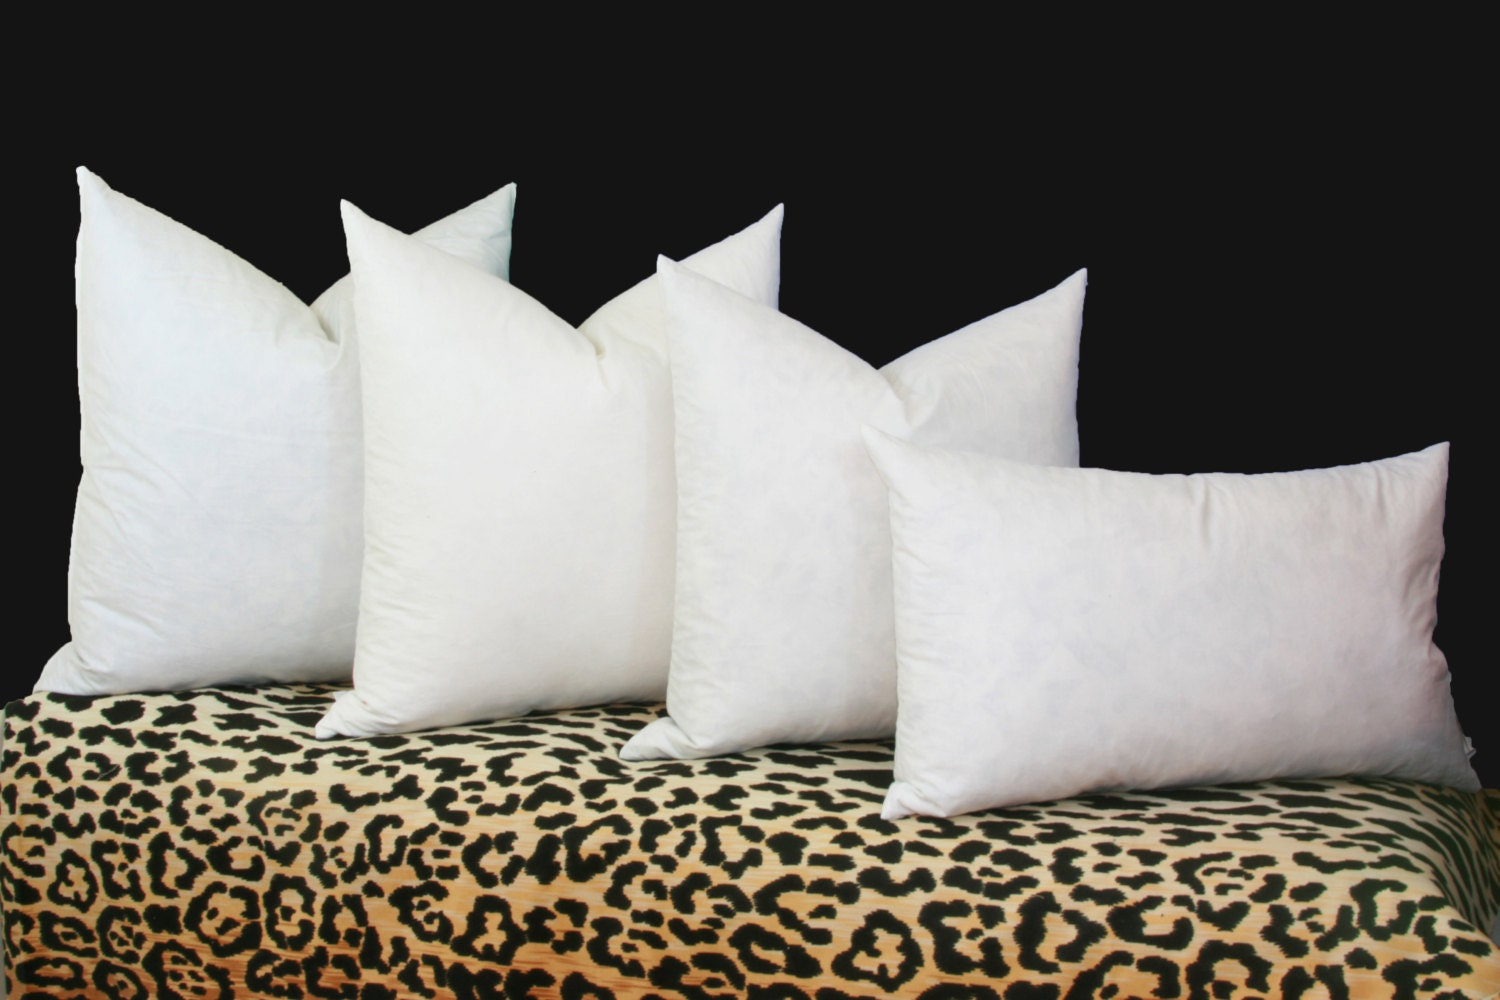 High quality synthetic pillow inserts 16x16 pillow insert